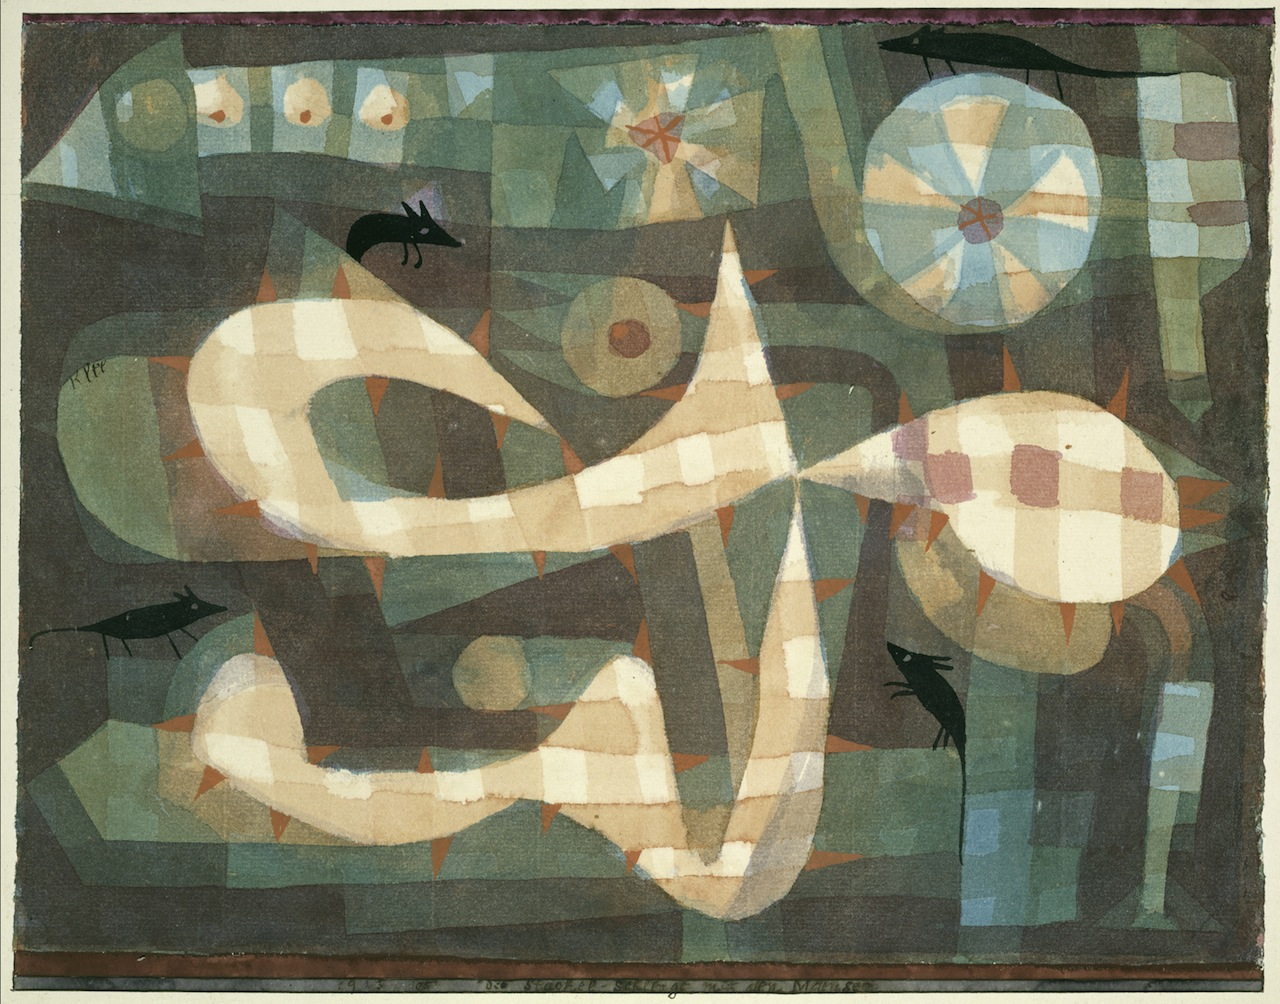 The Barbed Noose with the Mice. 1923. Watercolor and gouache on paper, bordered with gouache. The Berggruen Klee Collection, 1987 (1987.455.13).